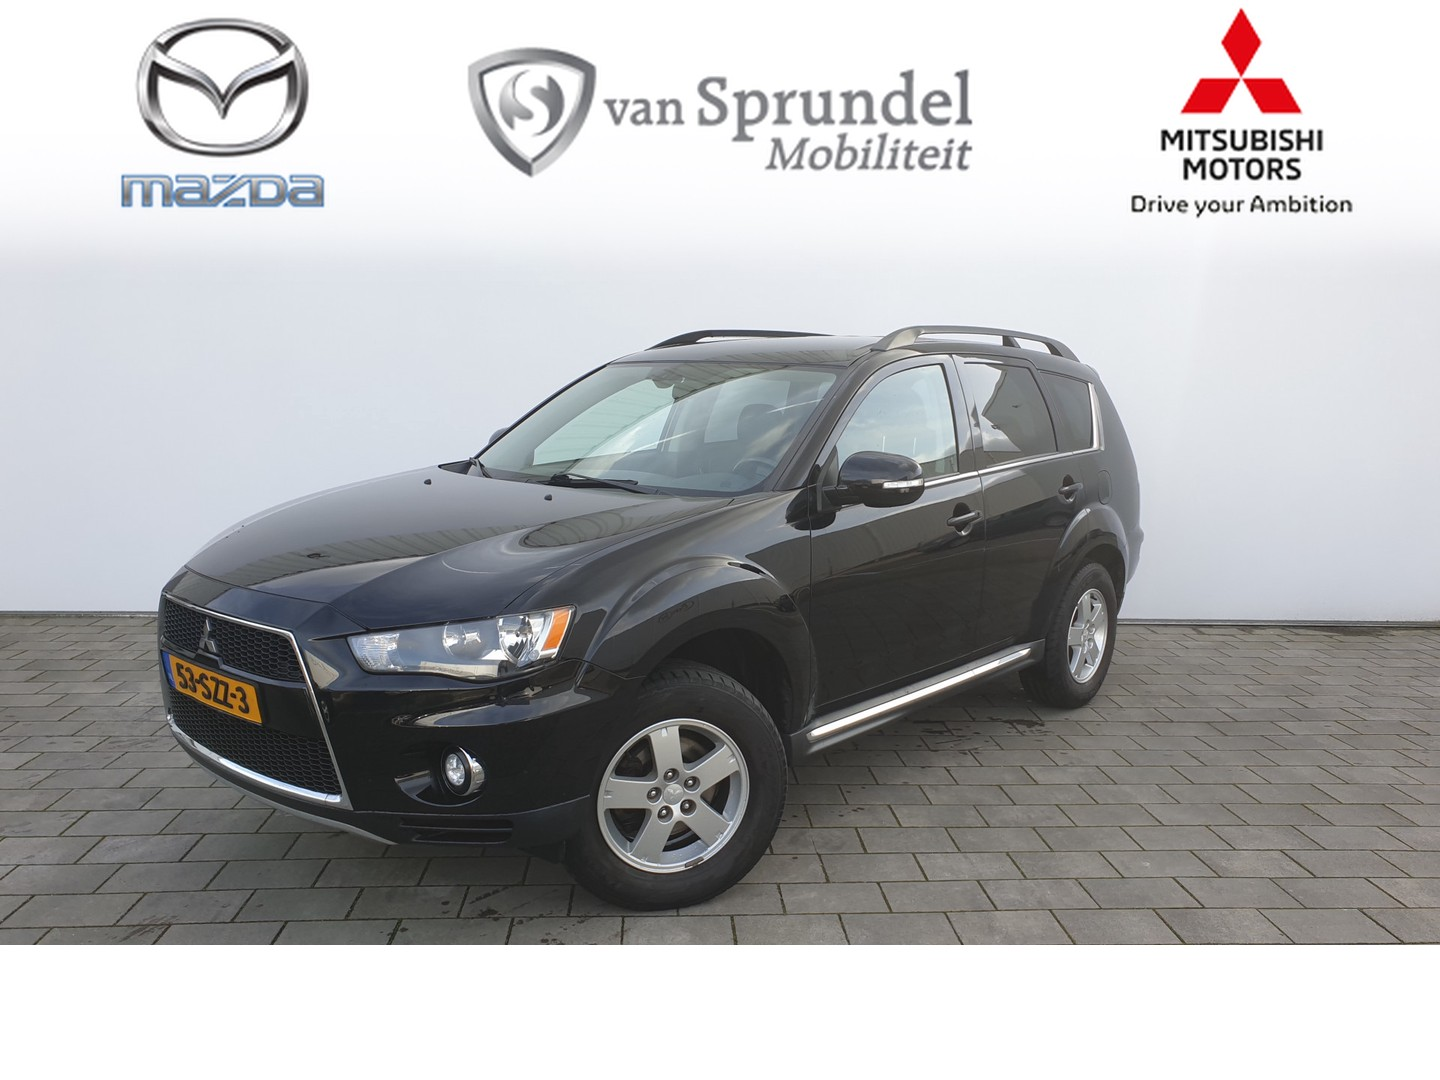 Mitsubishi Outlander 2.0 intro edition